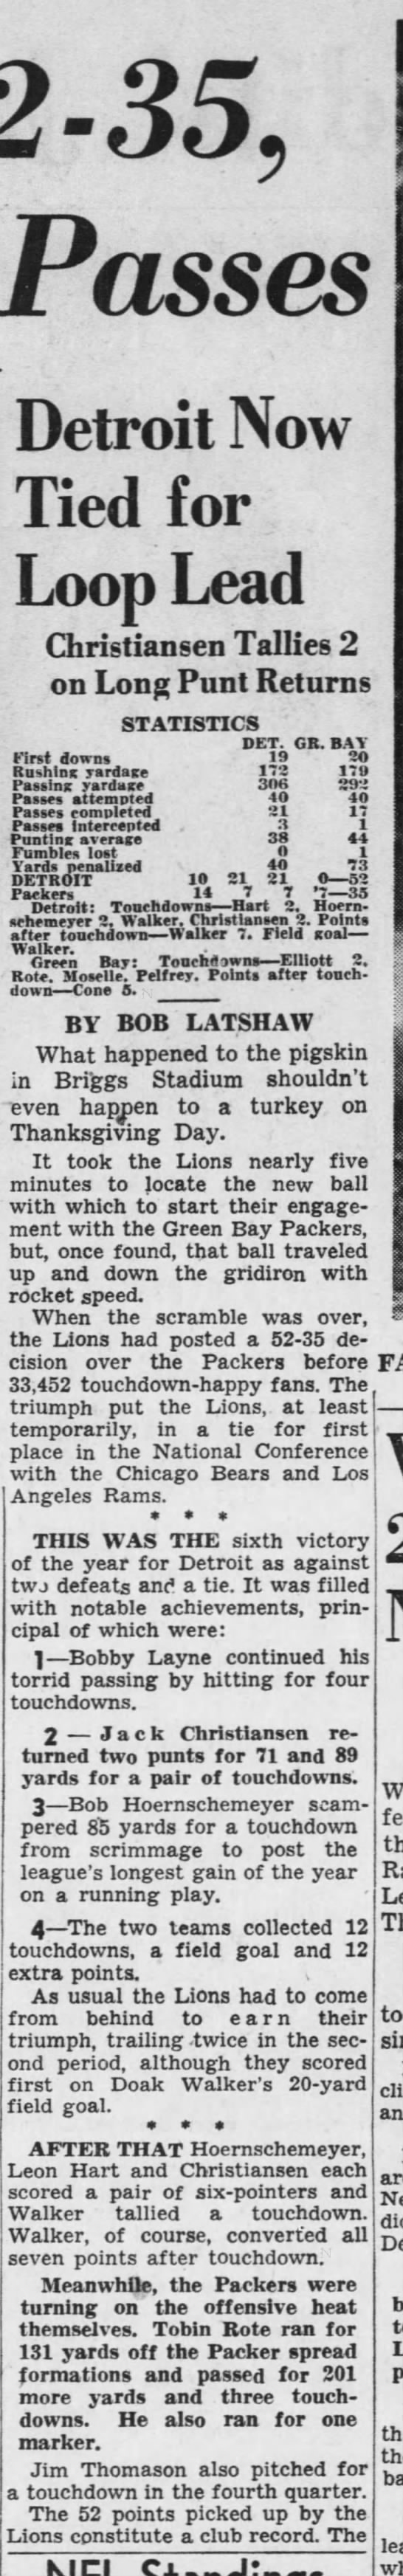 Lions Wallop Packers, 52-35 -